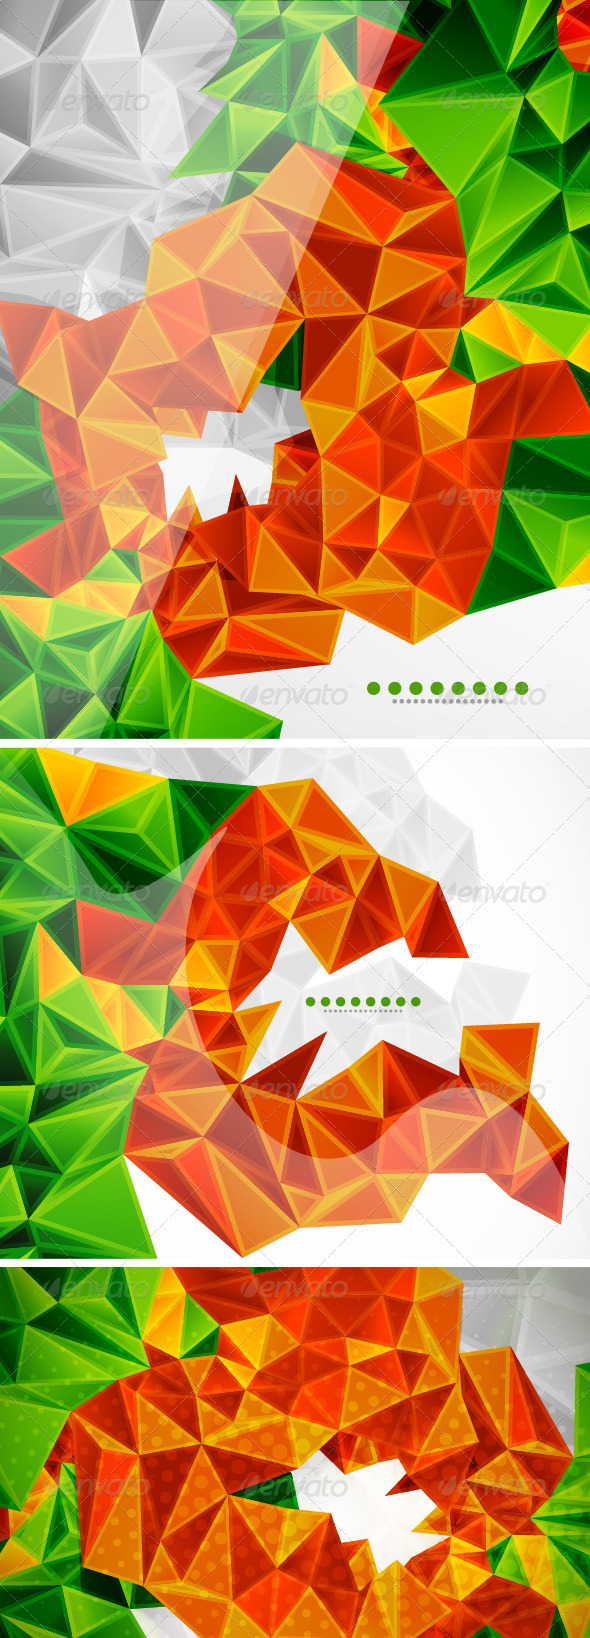 GraphicRiver Vector Mosaics Backgrounds 3577133